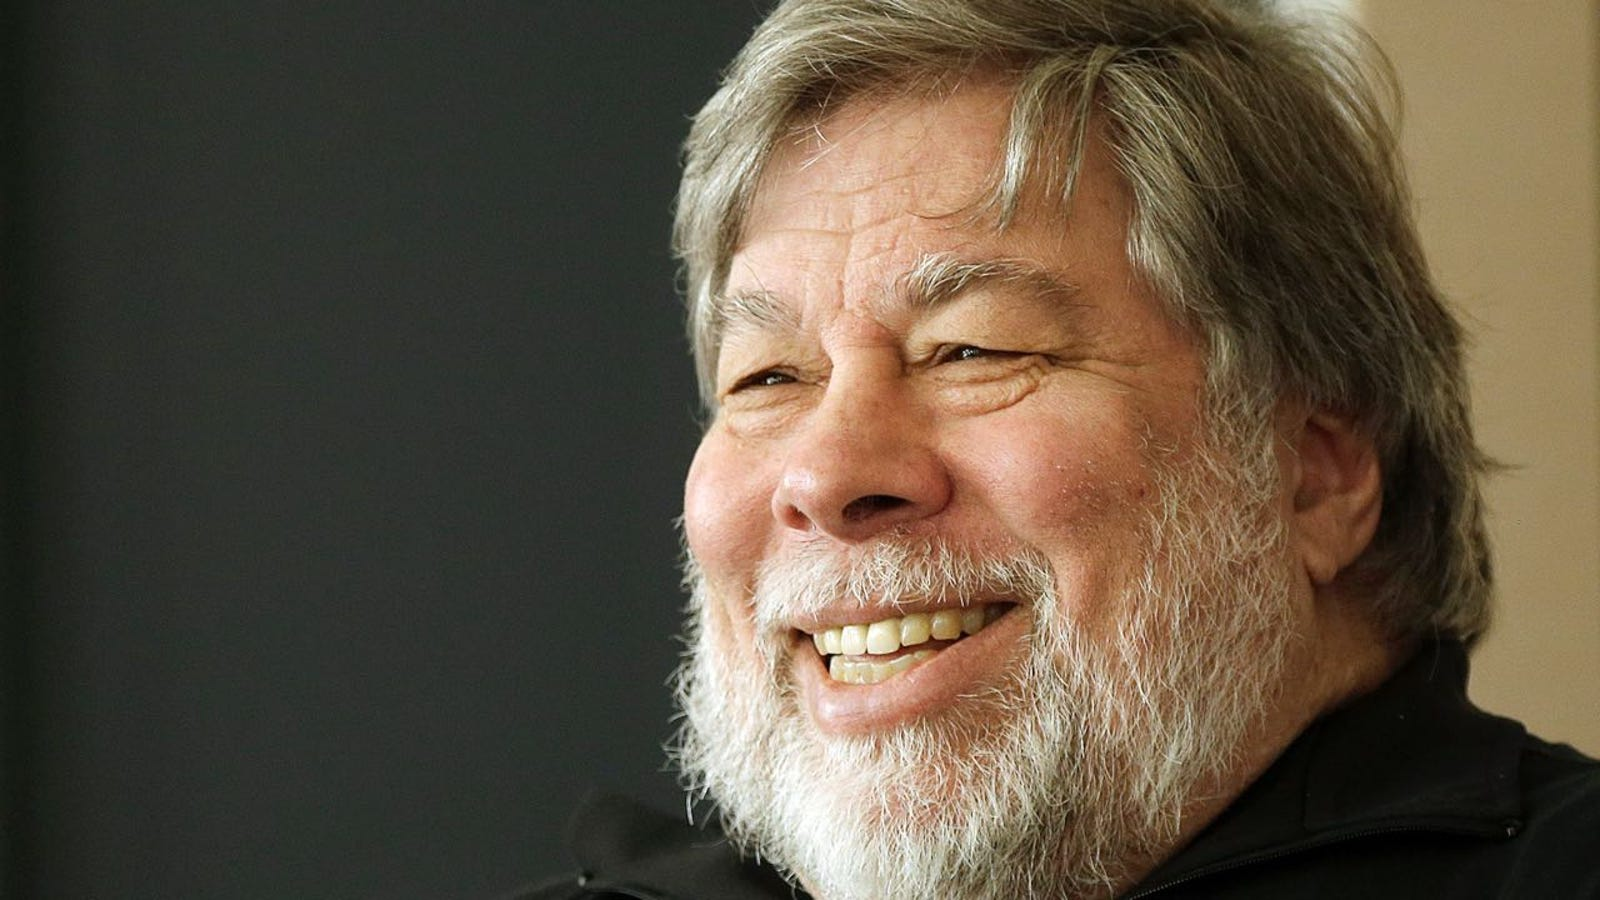 orange earbuds with mic - Woz to Apple: You Don't Know Jack